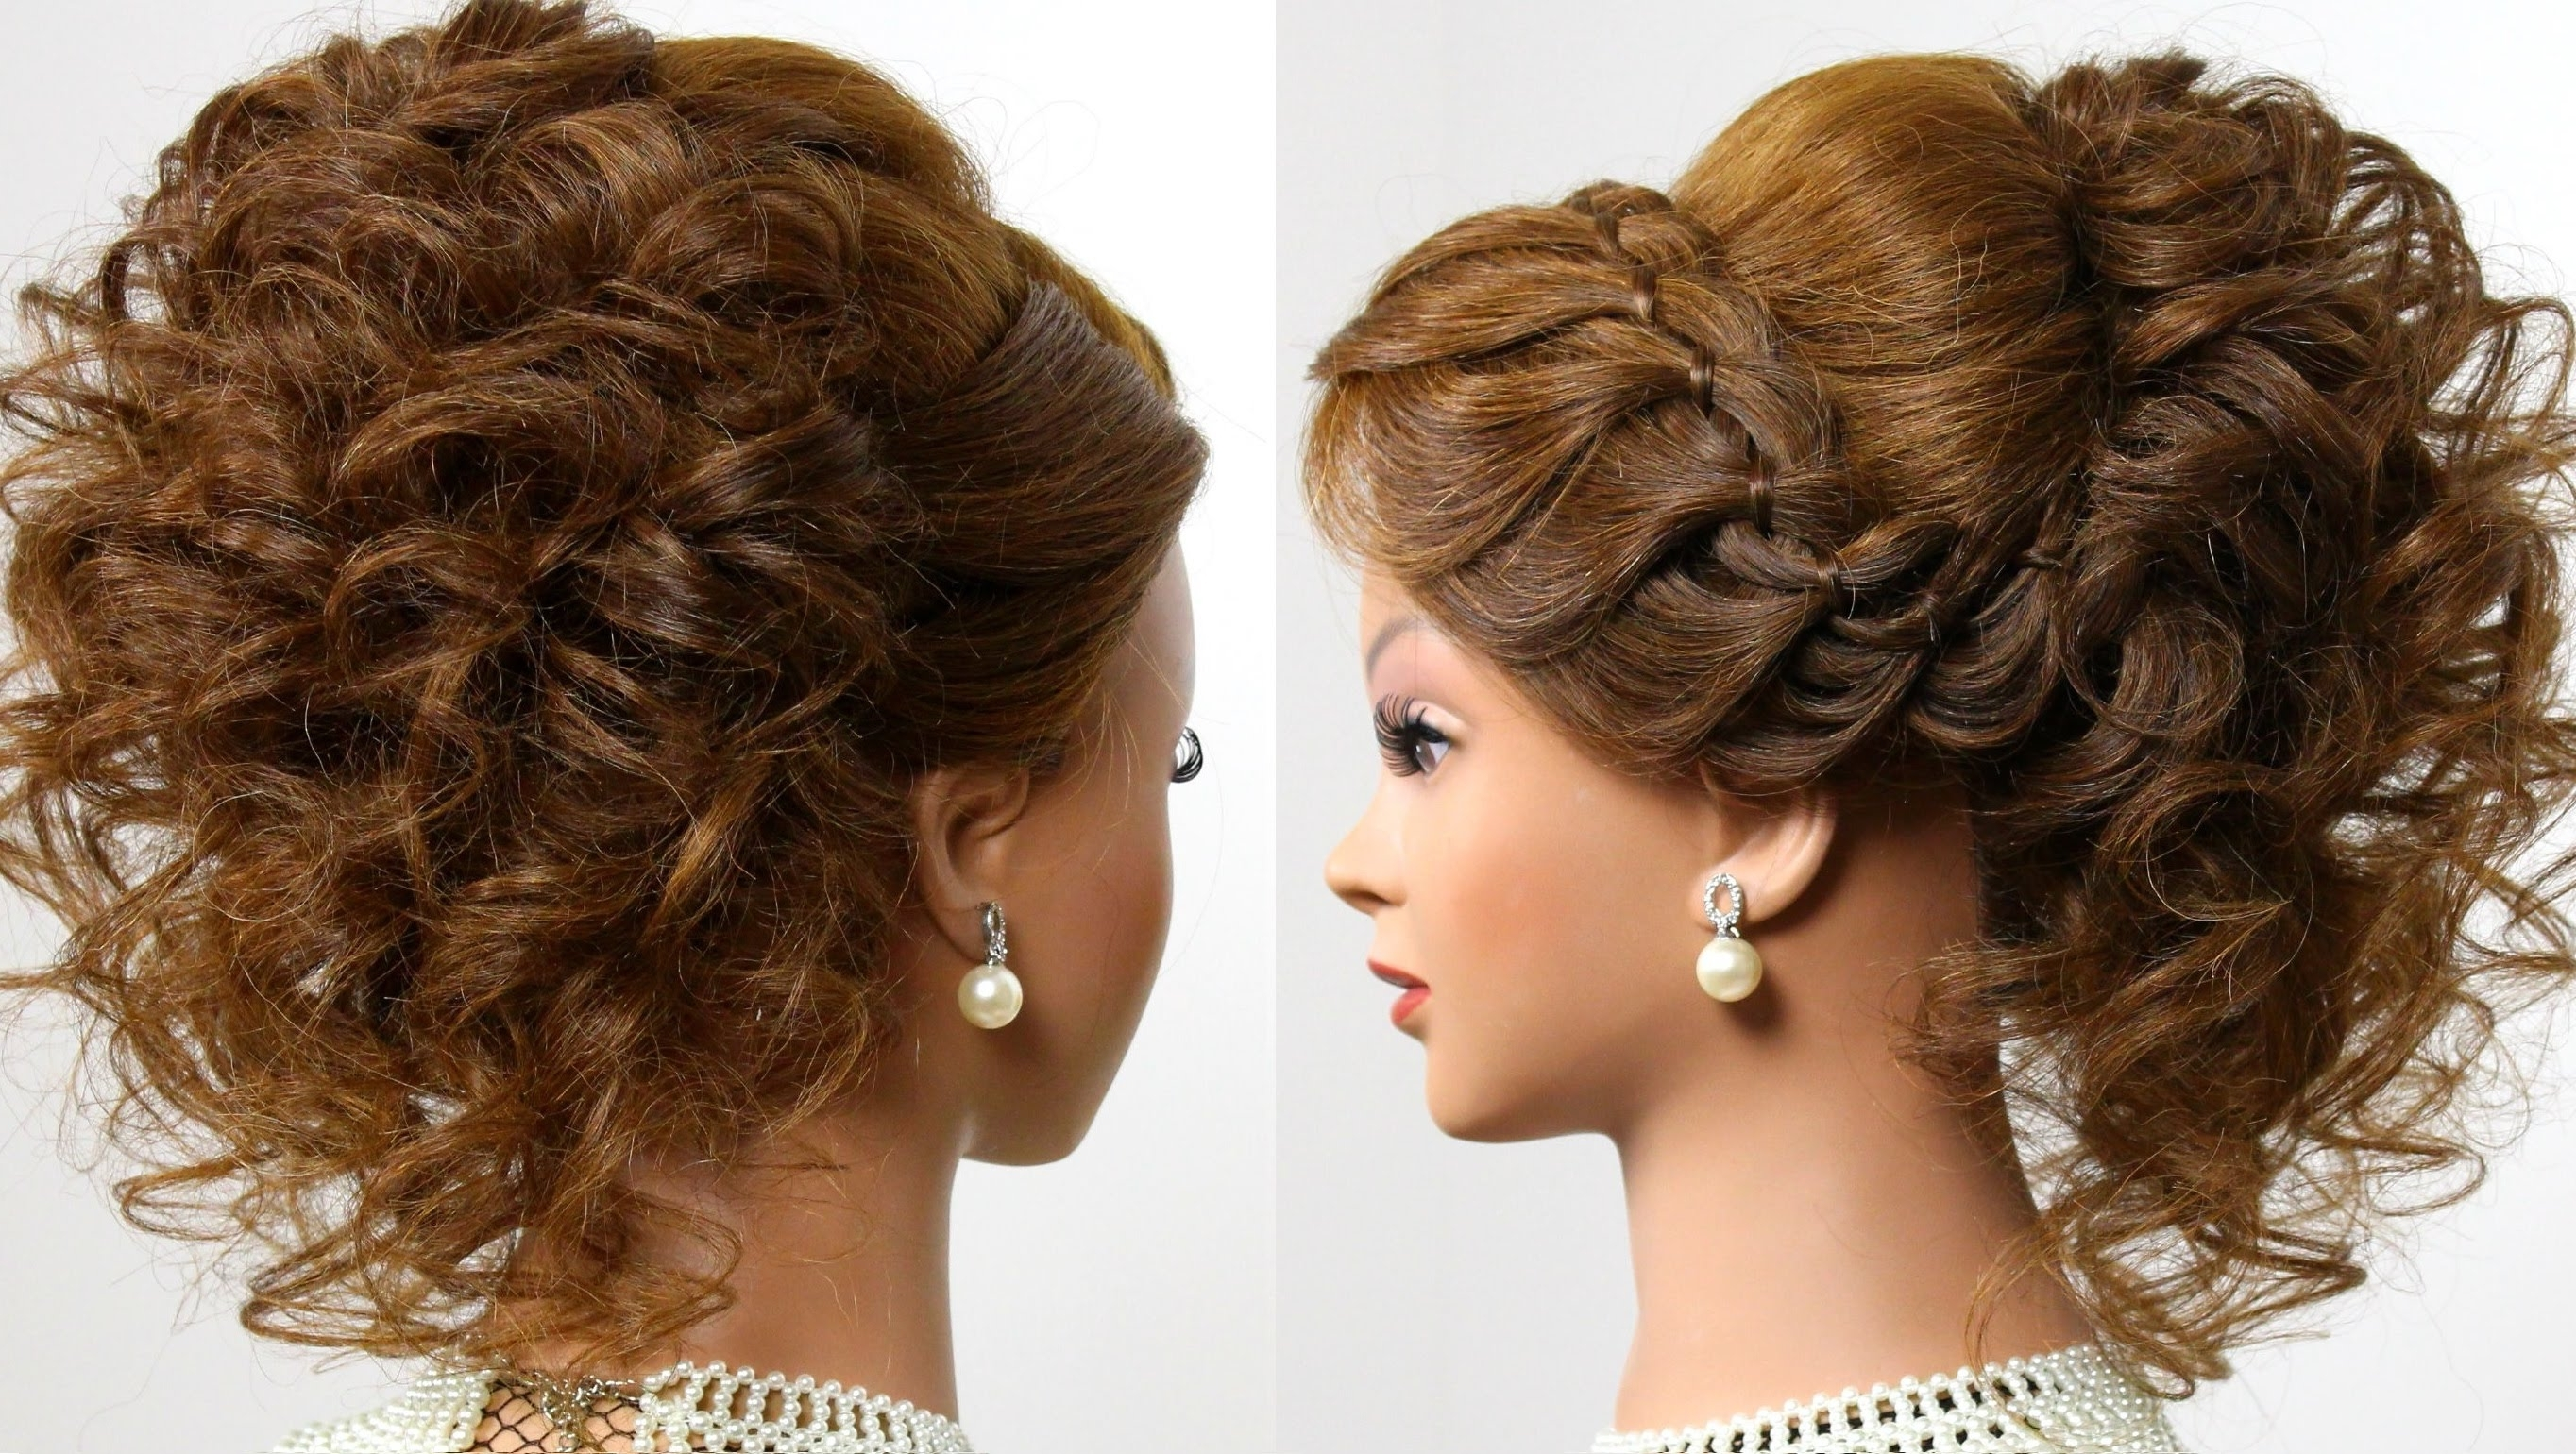 Photo Gallery Of Prom Updo Hairstyles For Long Hair Viewing 11 Of